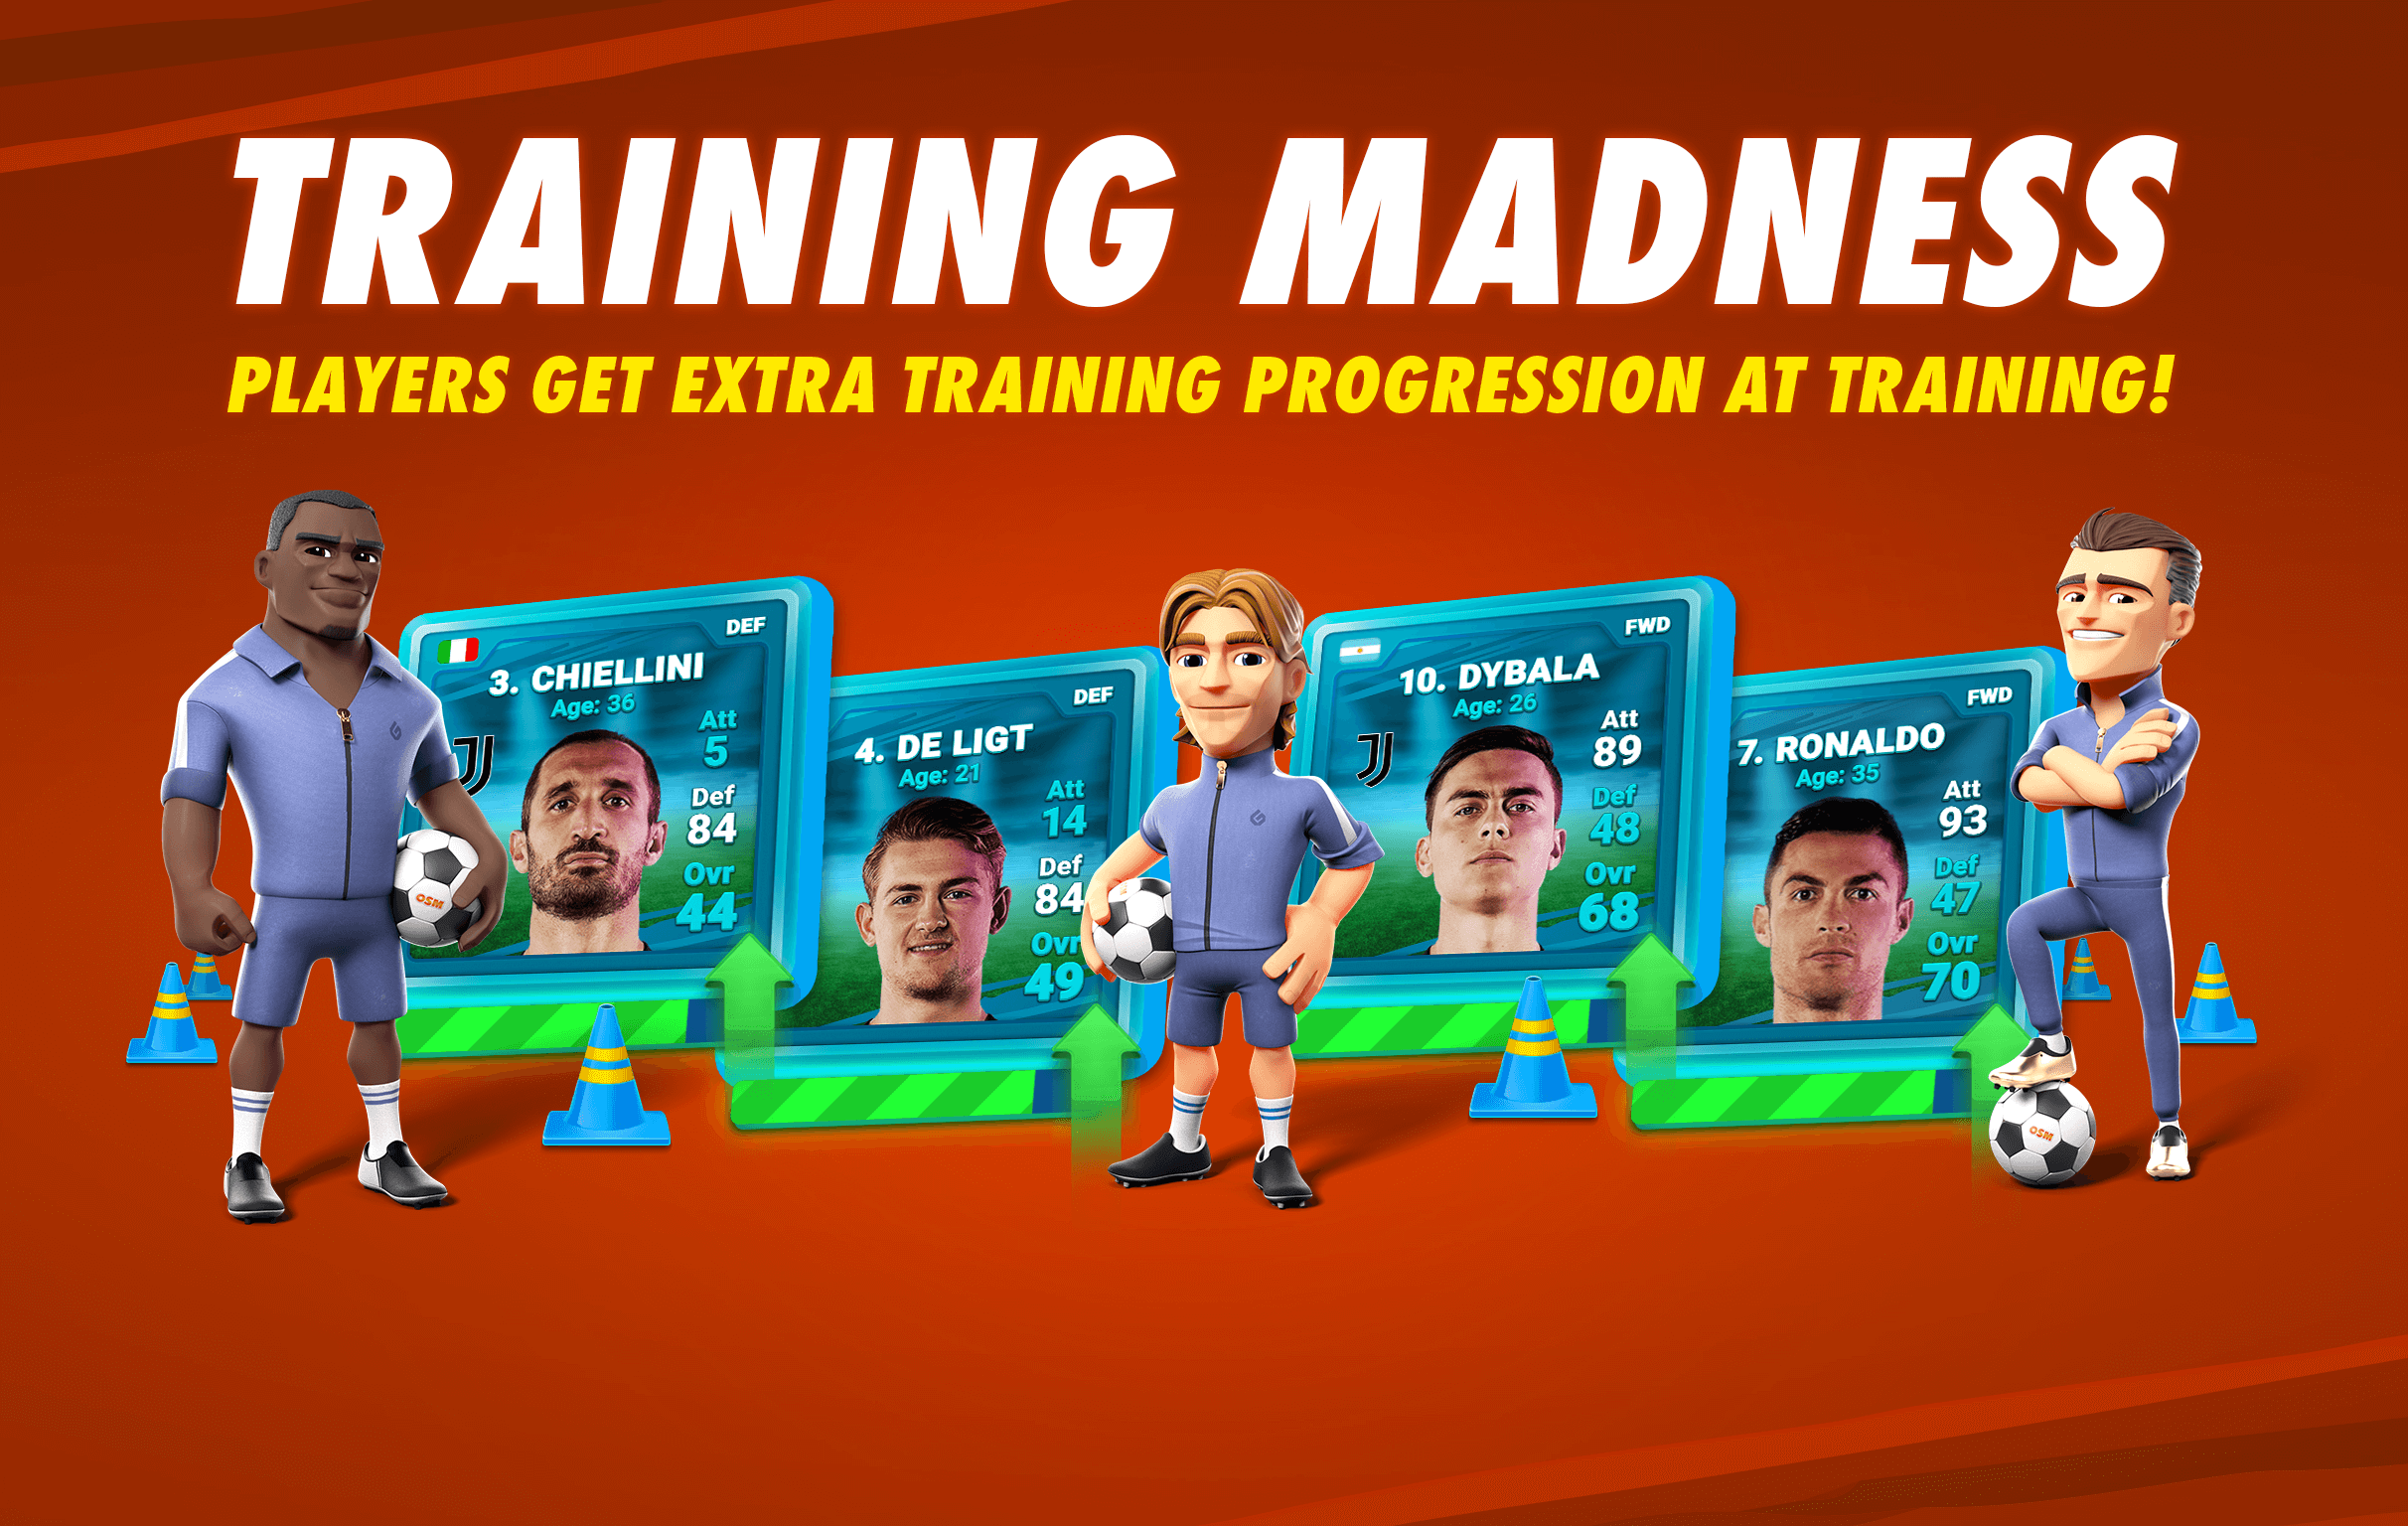 https://forum.onlinesoccermanager.com/assets/uploads/files/1601020277607-cp_training-madness_en.png